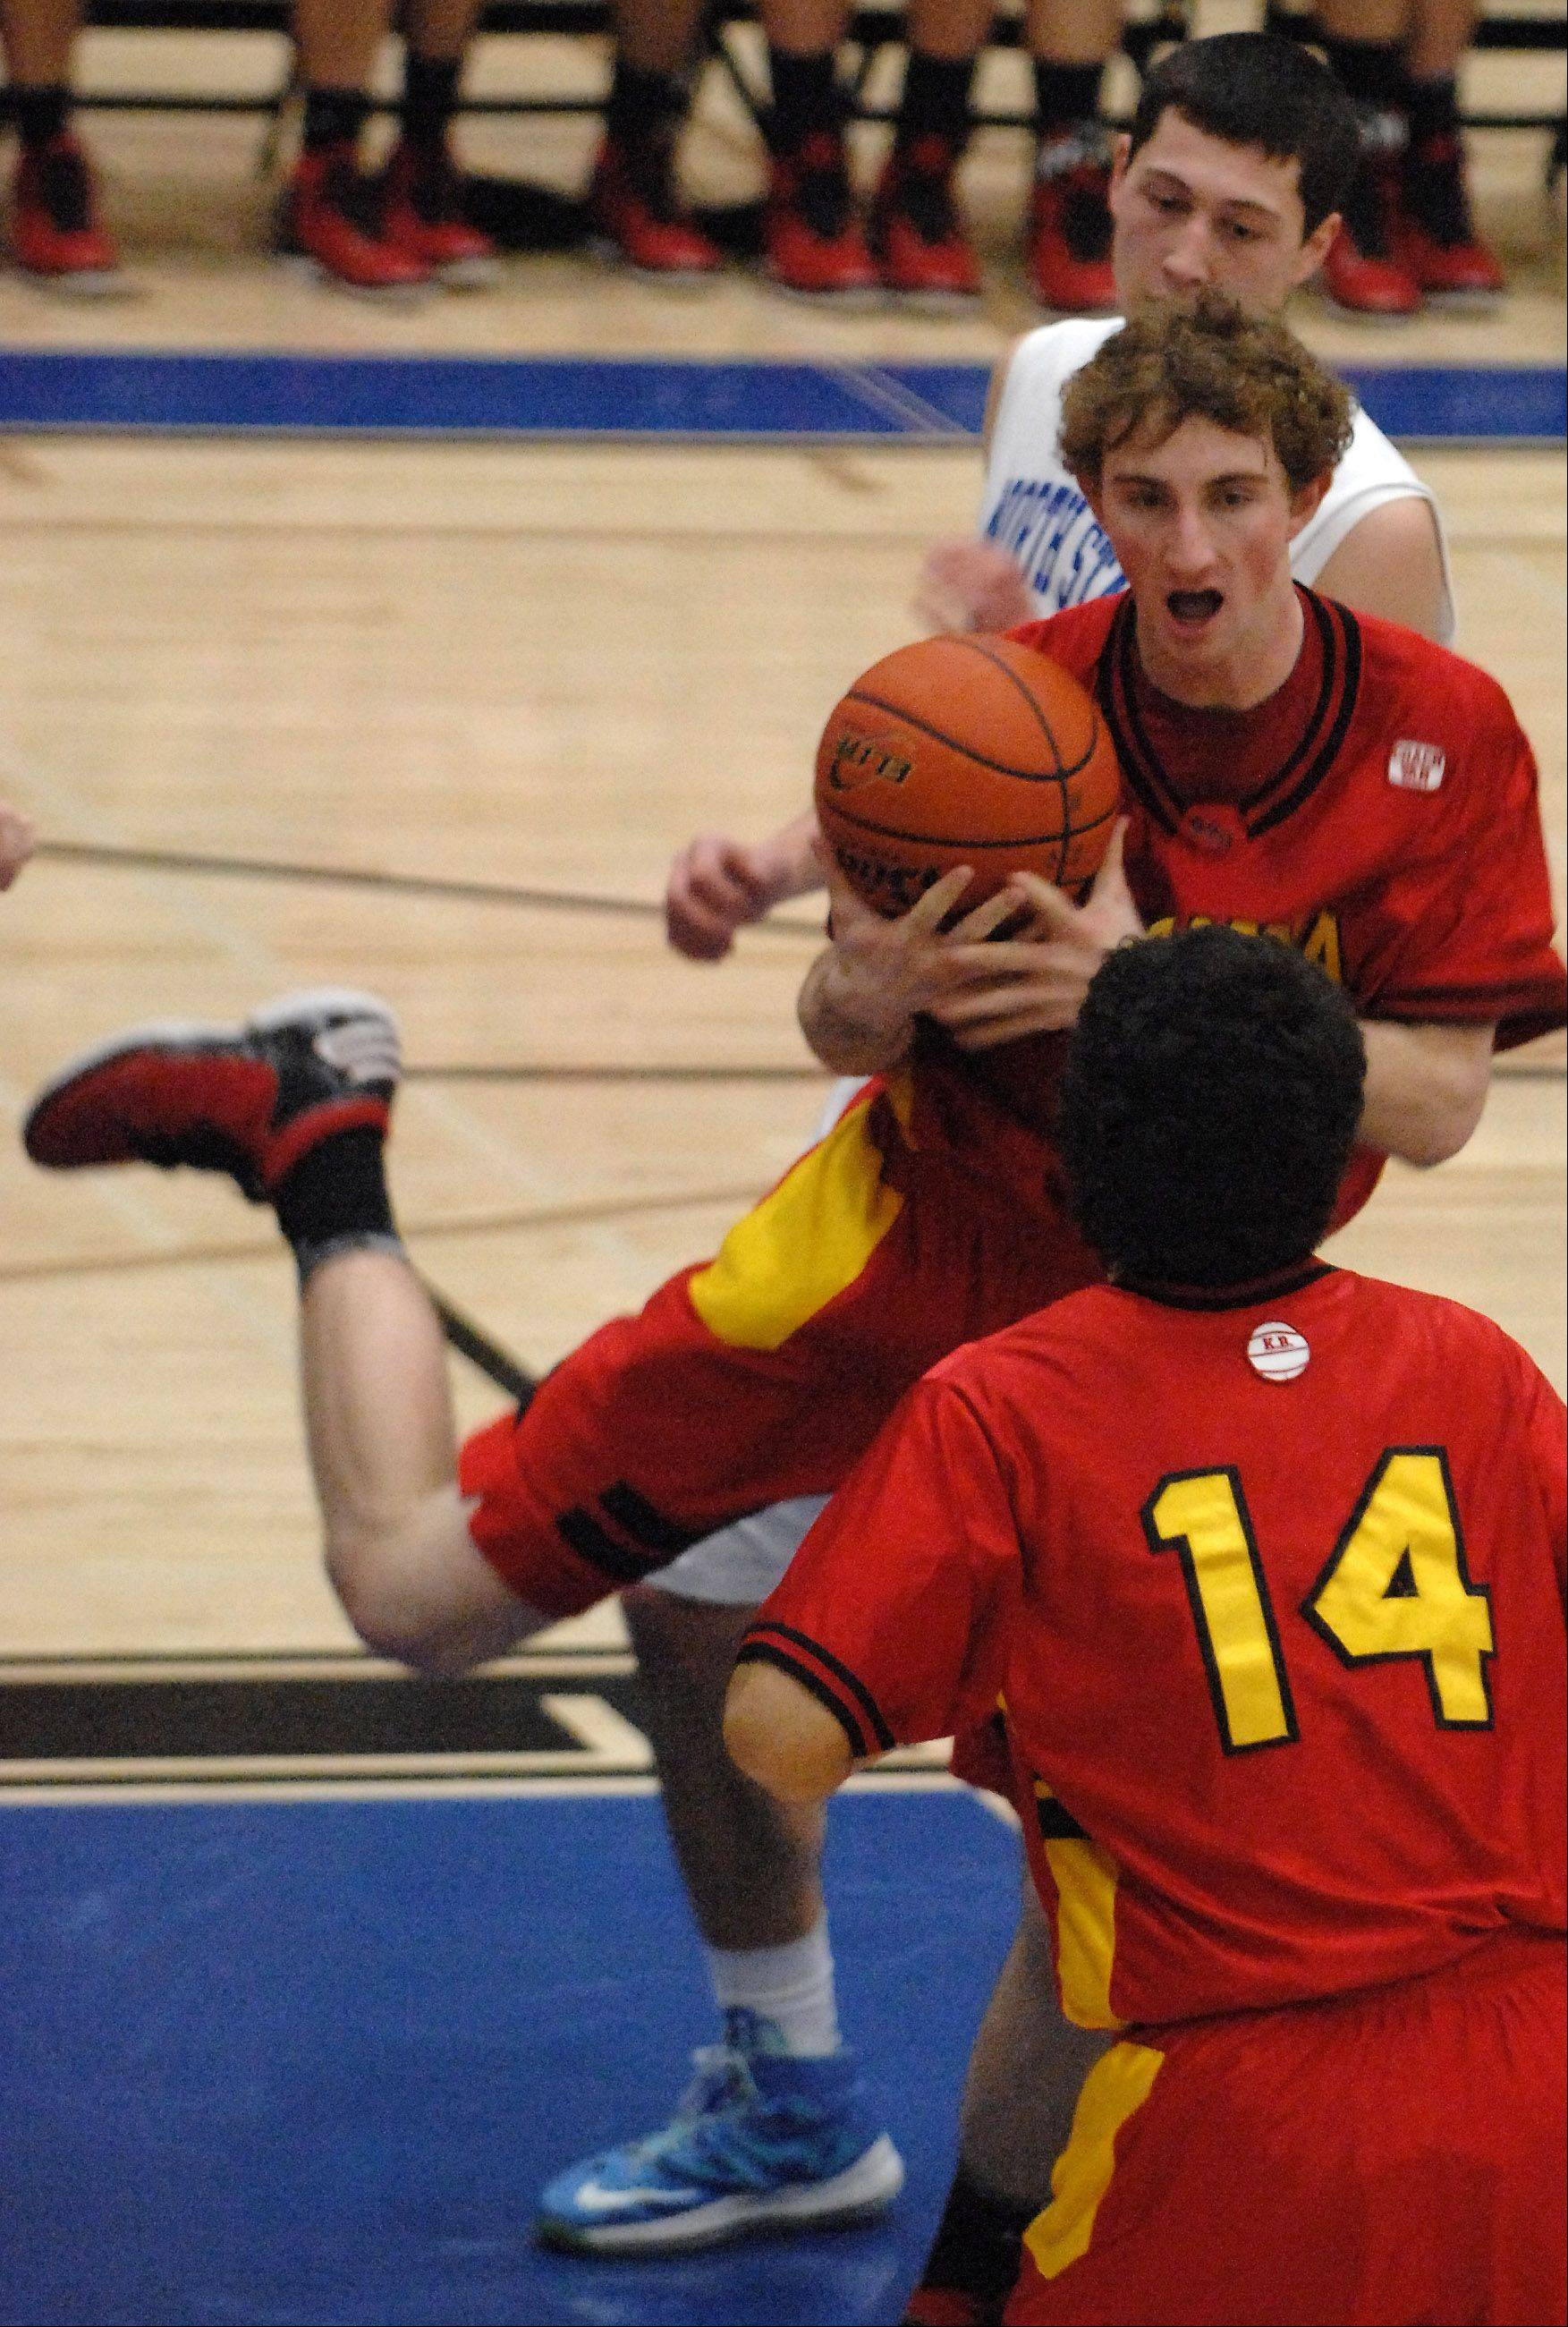 Images from the Batavia vs. St. Charles North boys basketball game Friday, February 1, 2013.